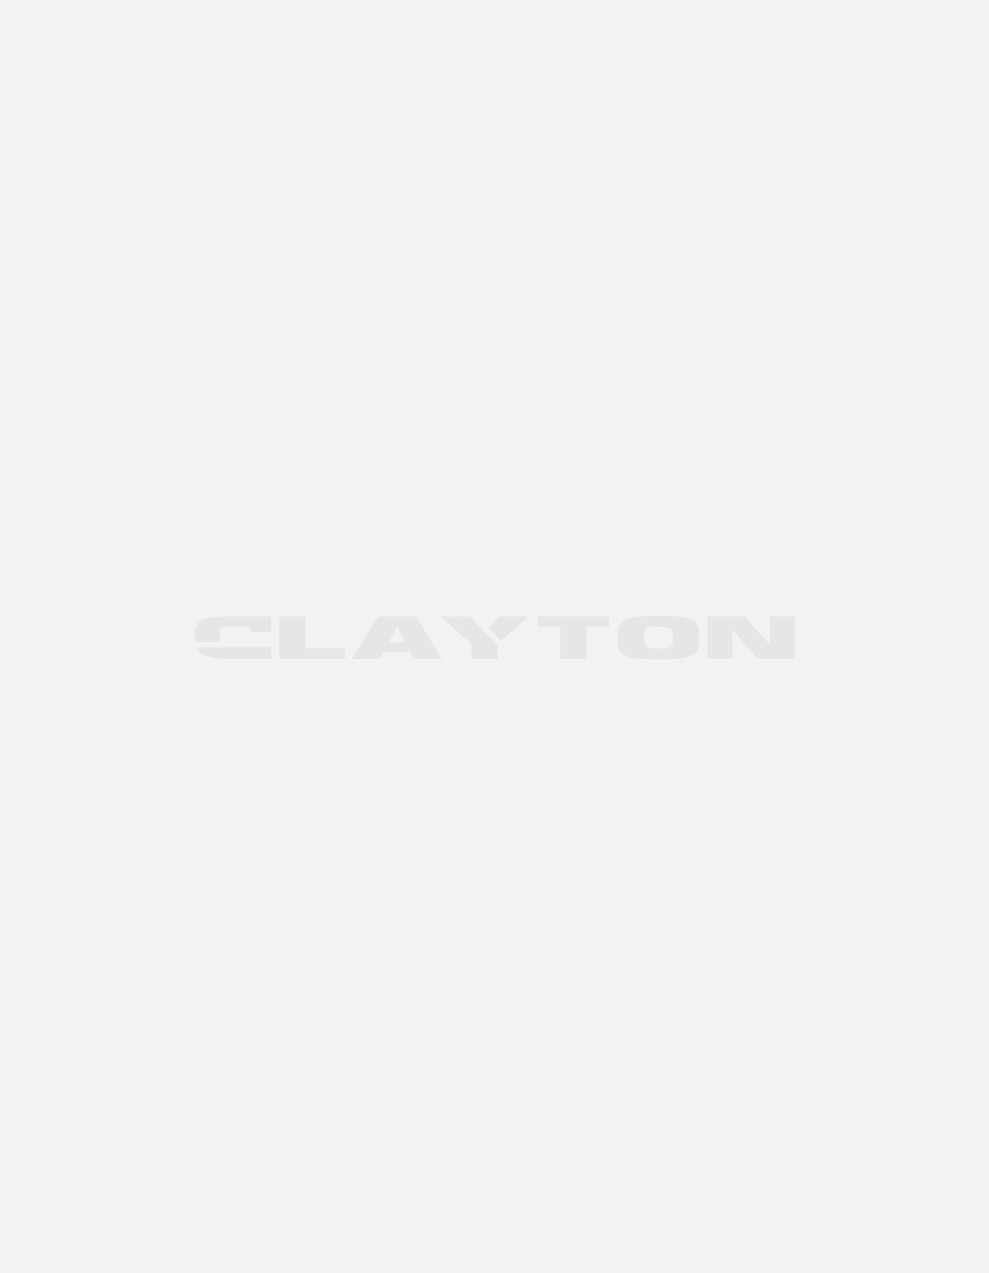 https://www.claytonitalia.com/media/catalog/product/cache/2/small_image/460x590/9df78eab33525d08d6e5fb8d27136e95/g/i/gift52_nt.jpg